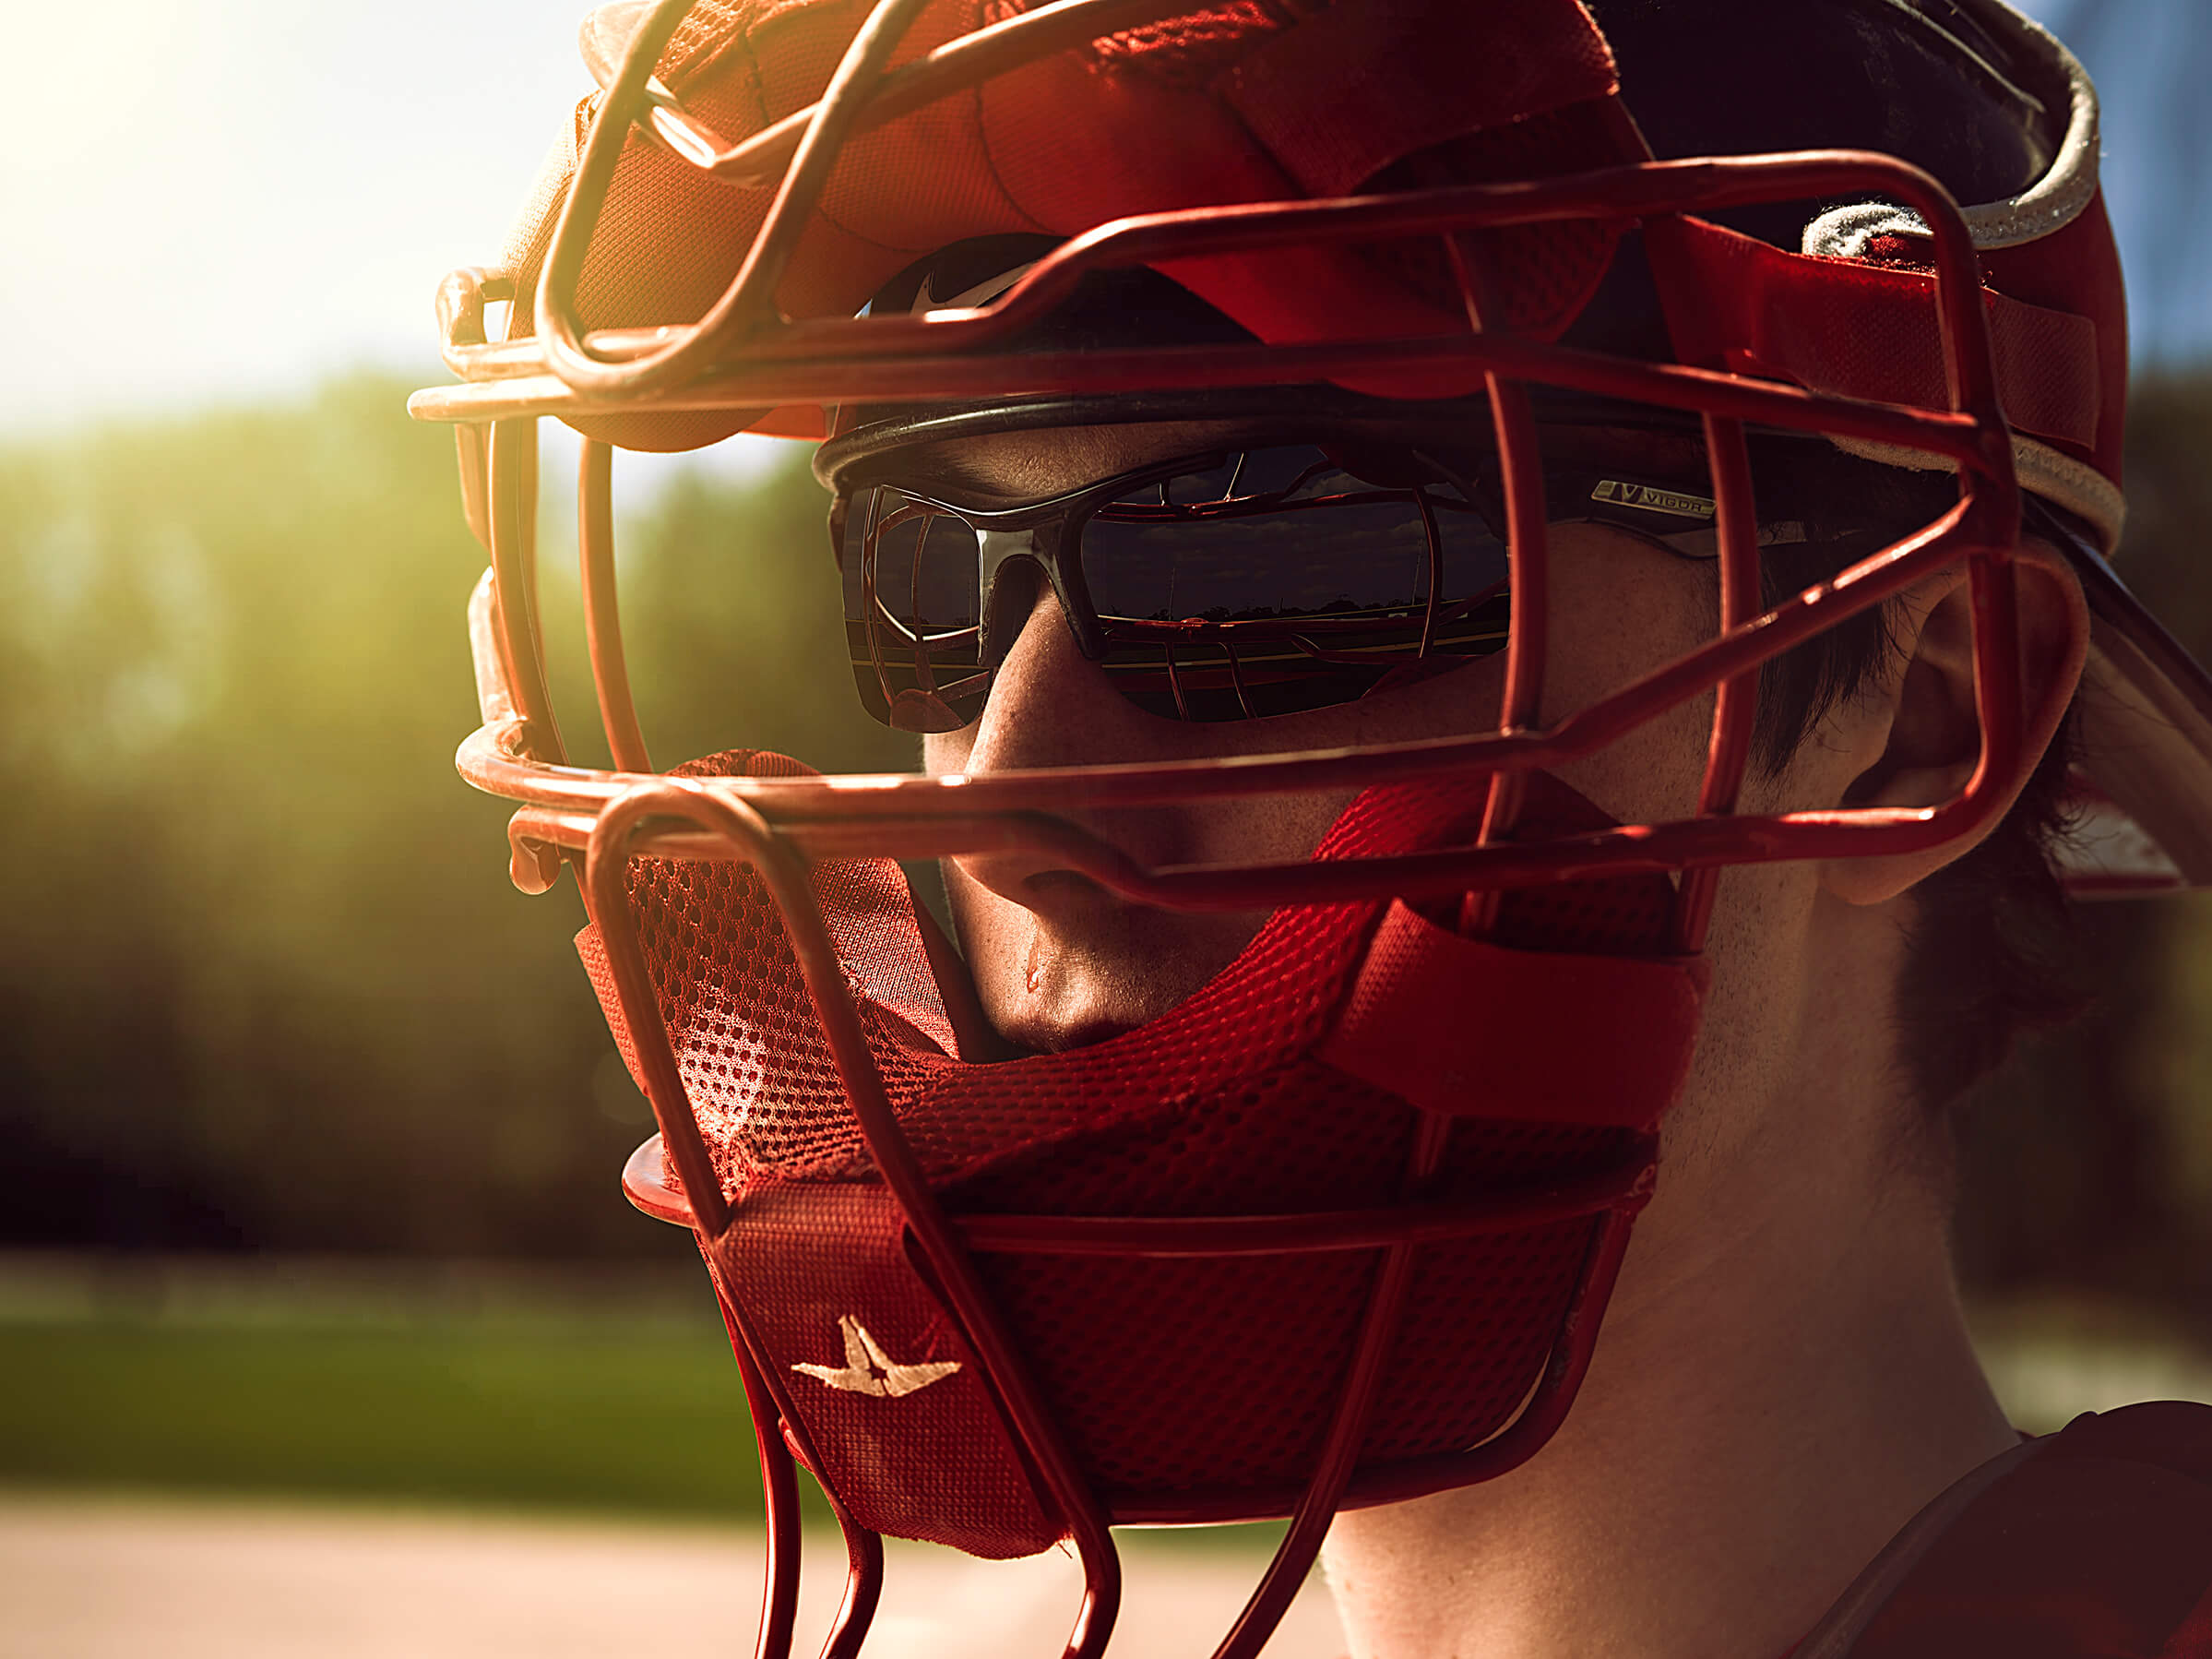 Unified Content, Unified Content Toronto, Max Rosenstein, Vigor Eyewear, Eyewear, Eyewear Toronto, Sport, Sport Eyewear, Action, Sports, Sports Photography, Product, Sunglasses, Sport Sunglasses, advertising, Product photography, Baseball,